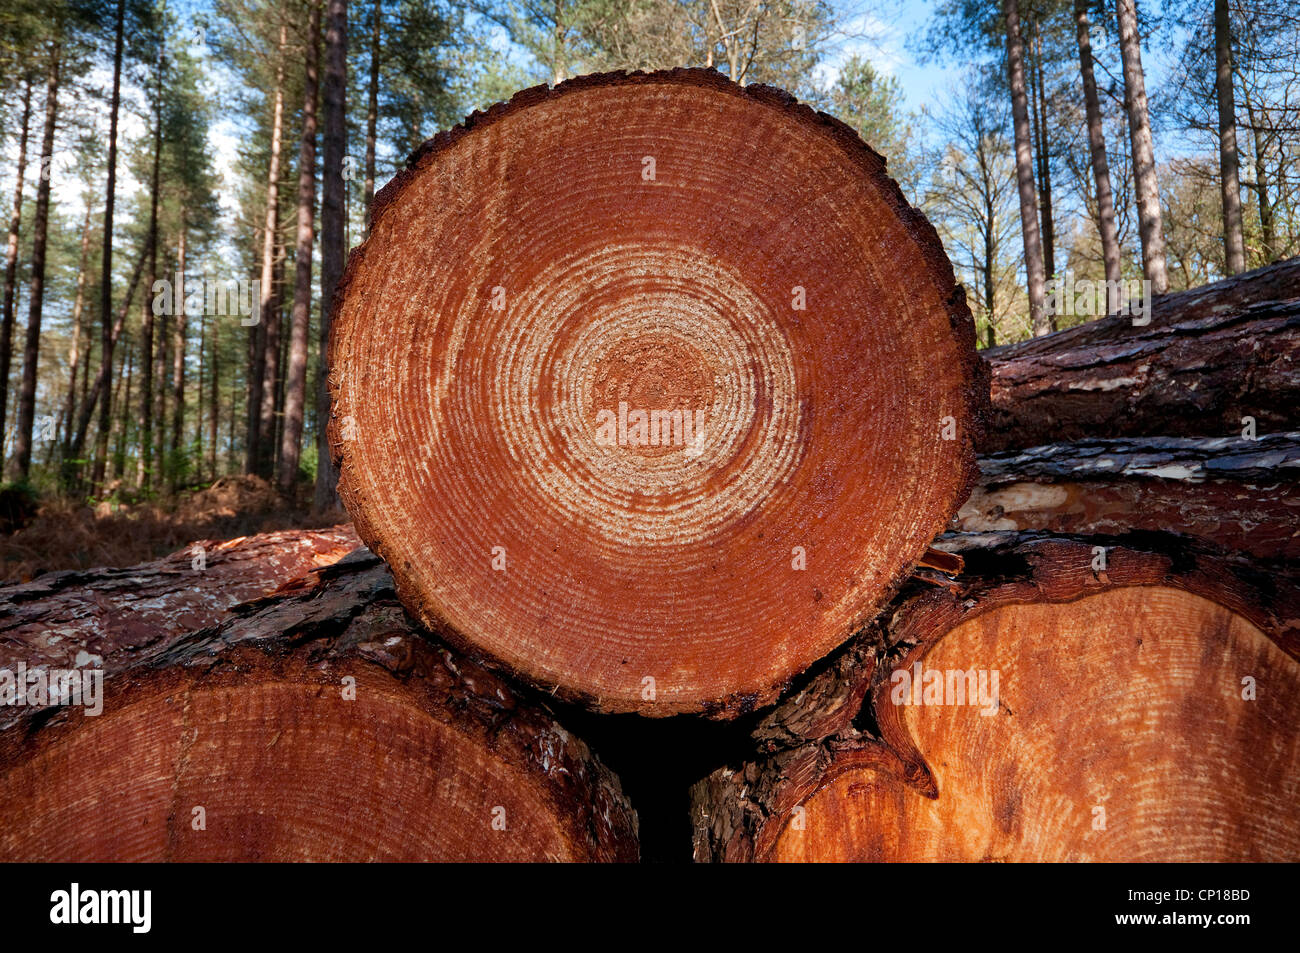 sawn timber logs in forest, norfolk, england - Stock Image